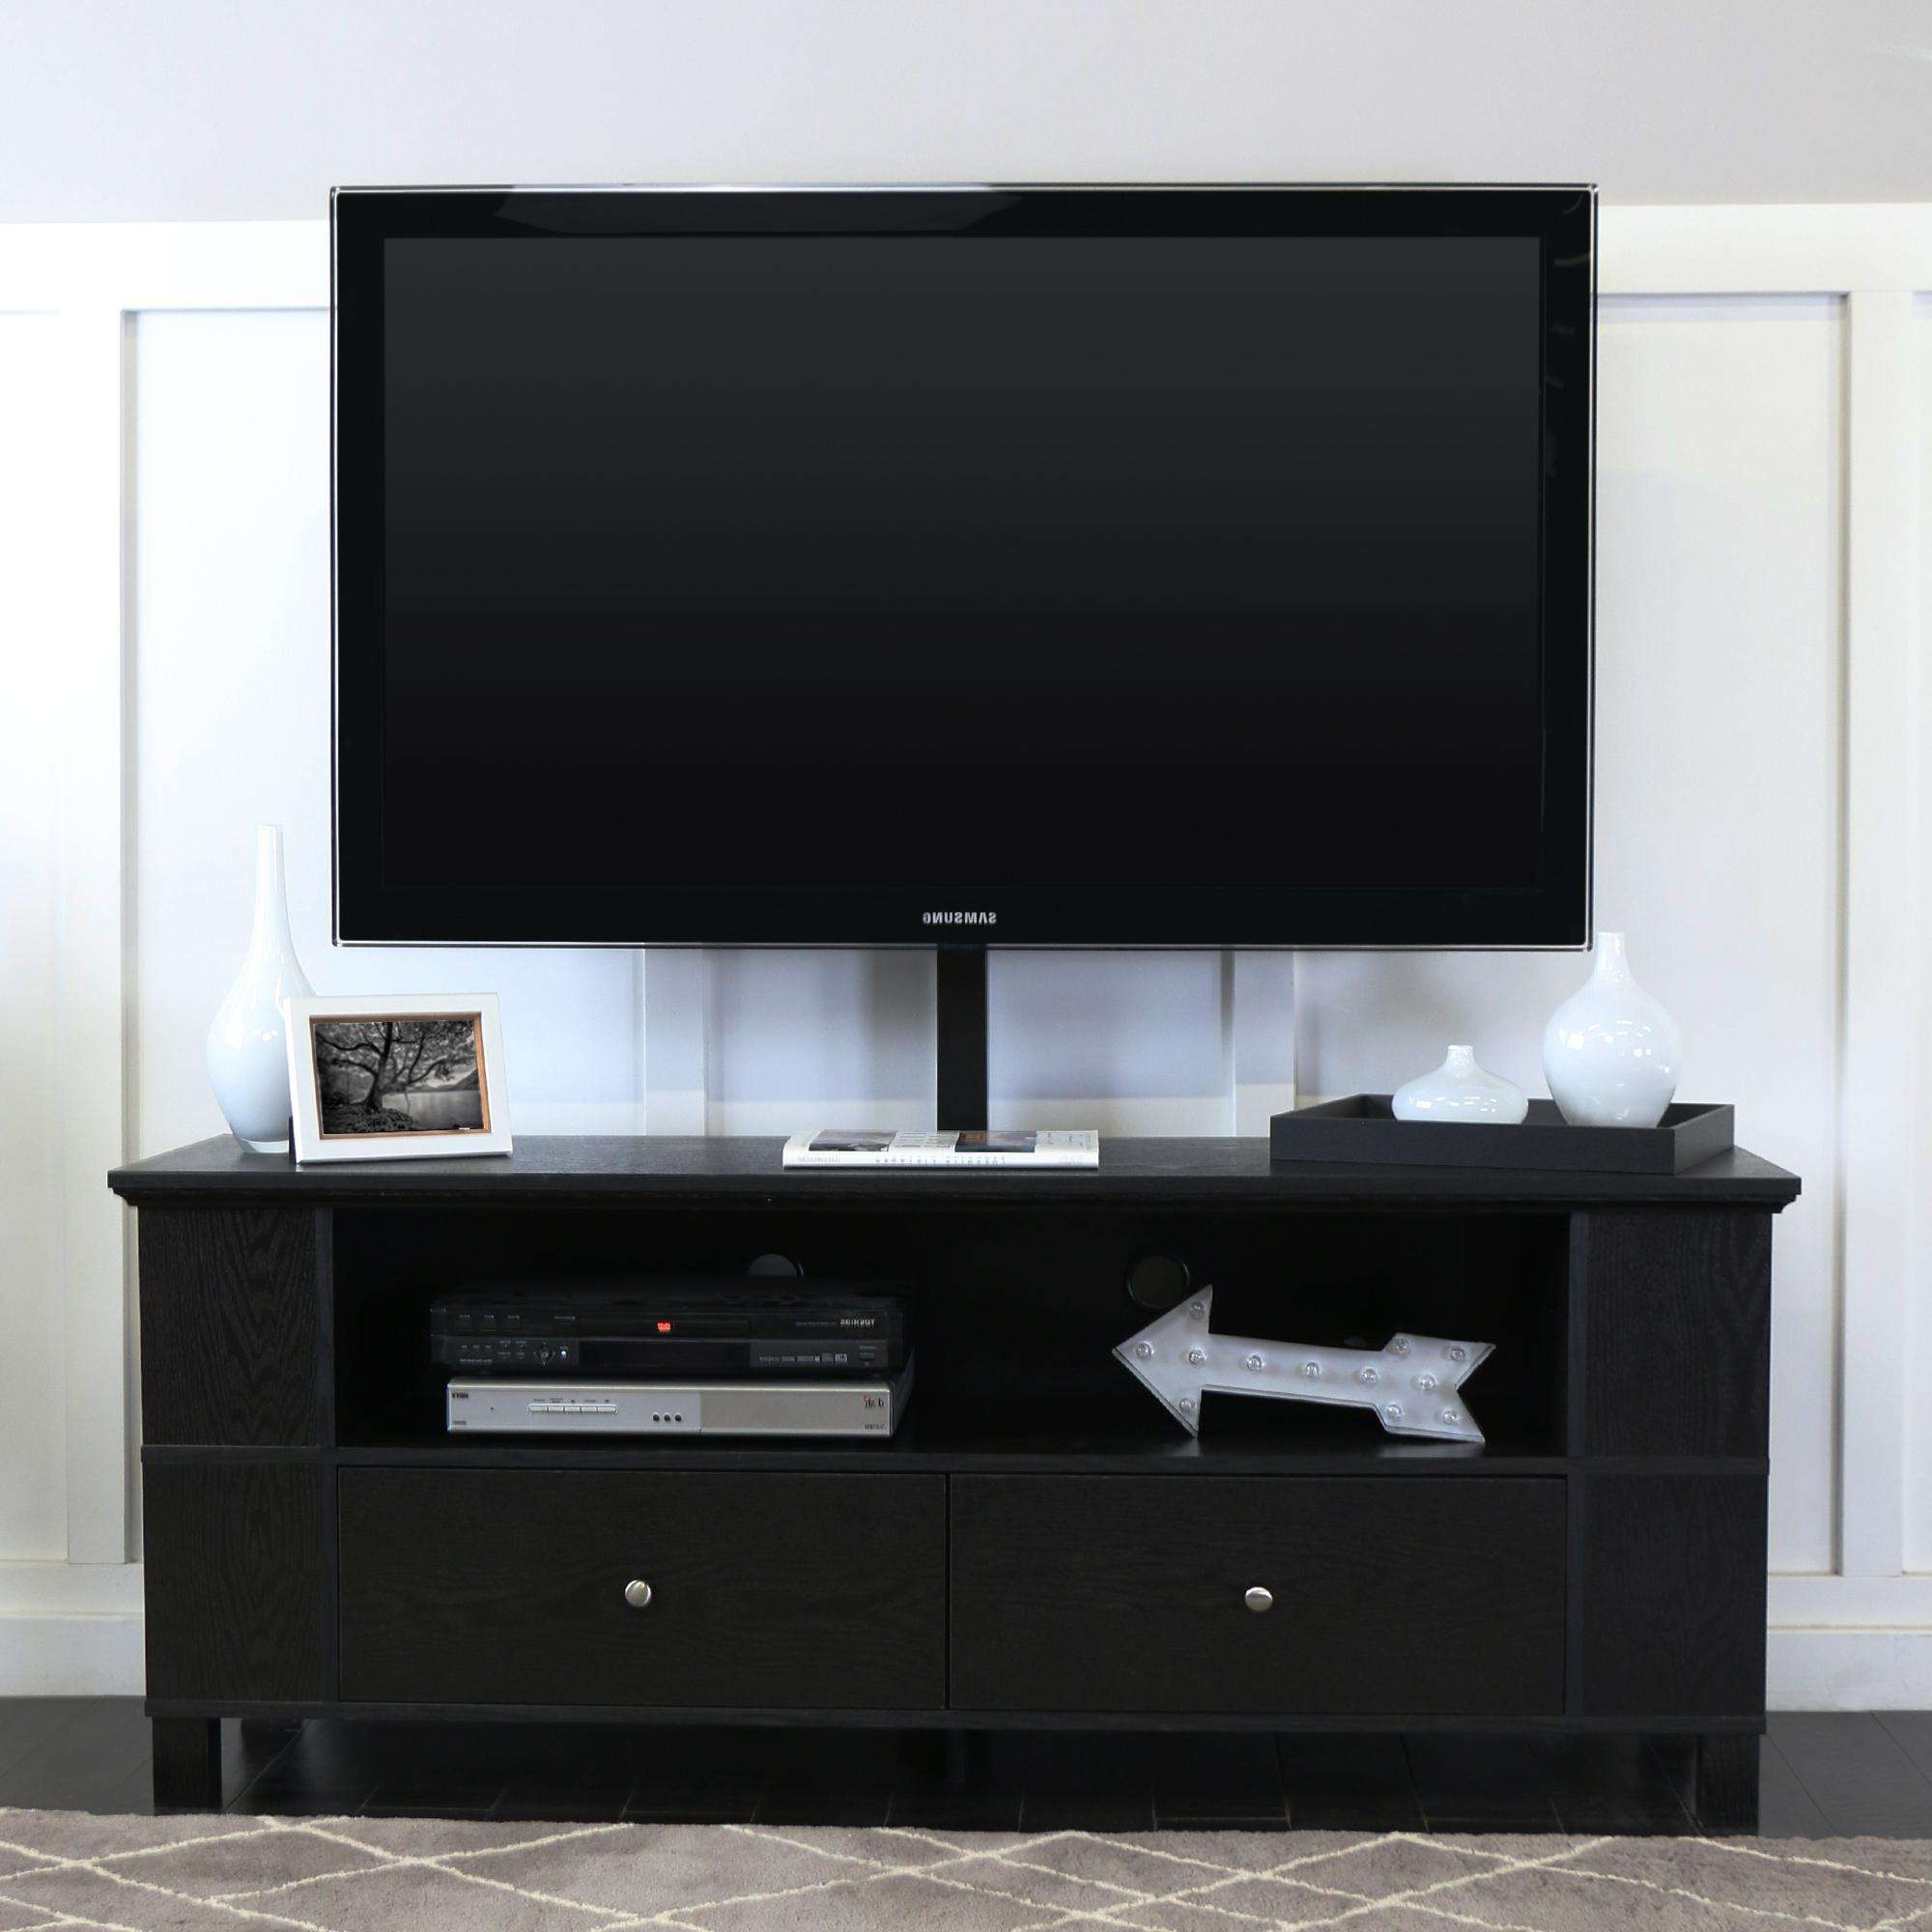 Furniture: Awesome Cymax Tv Stands With Cool Concepts Design Regarding Corner 60 Inch Tv Stands (View 10 of 15)